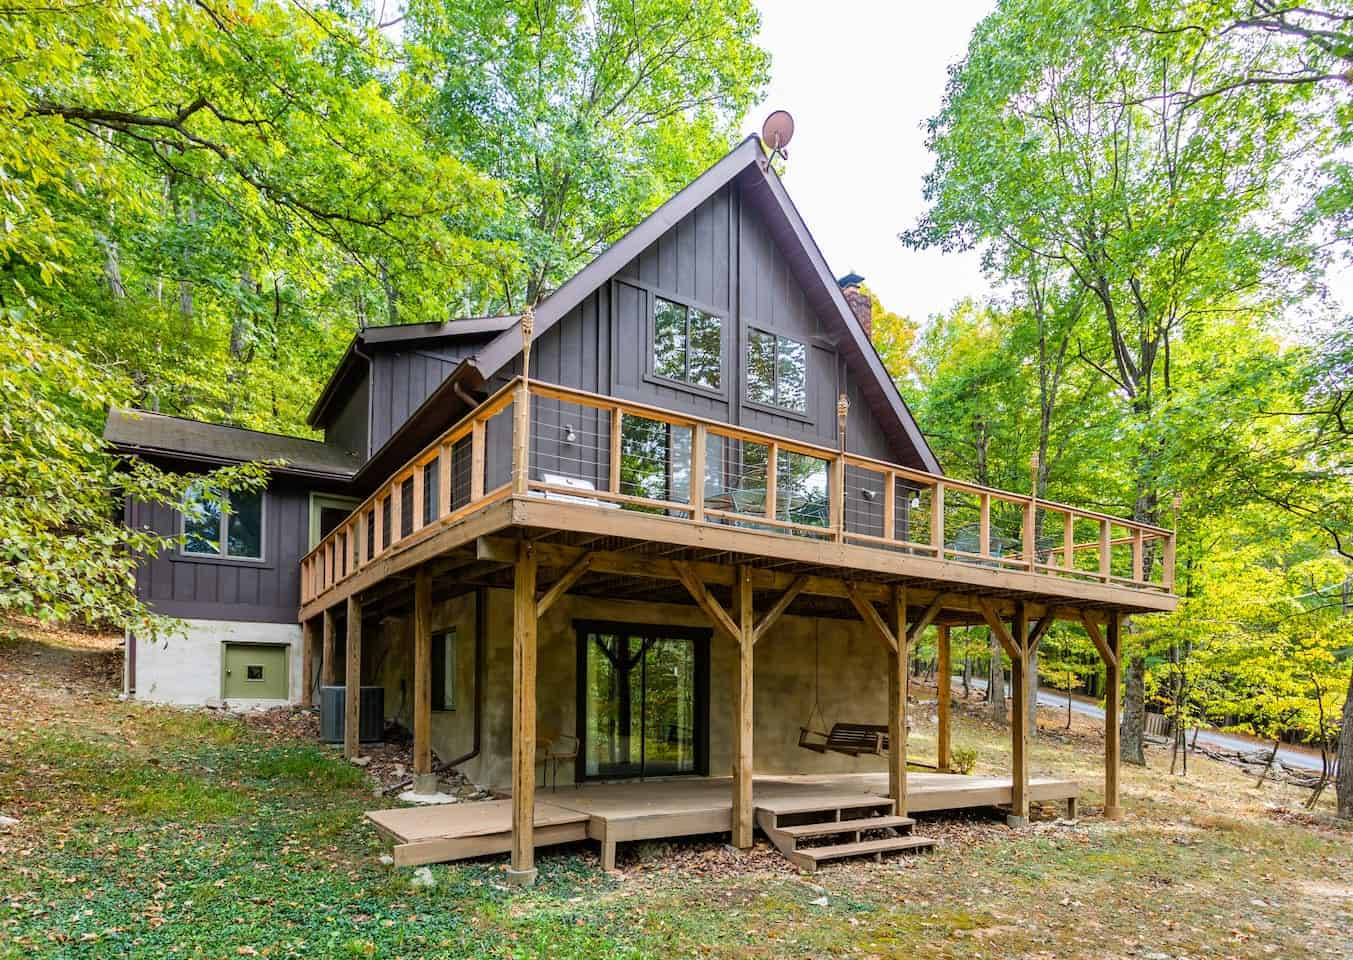 Unique Pet Friendly Cabin West Virginia Chalet Cabin with Private Lake Huge Deck